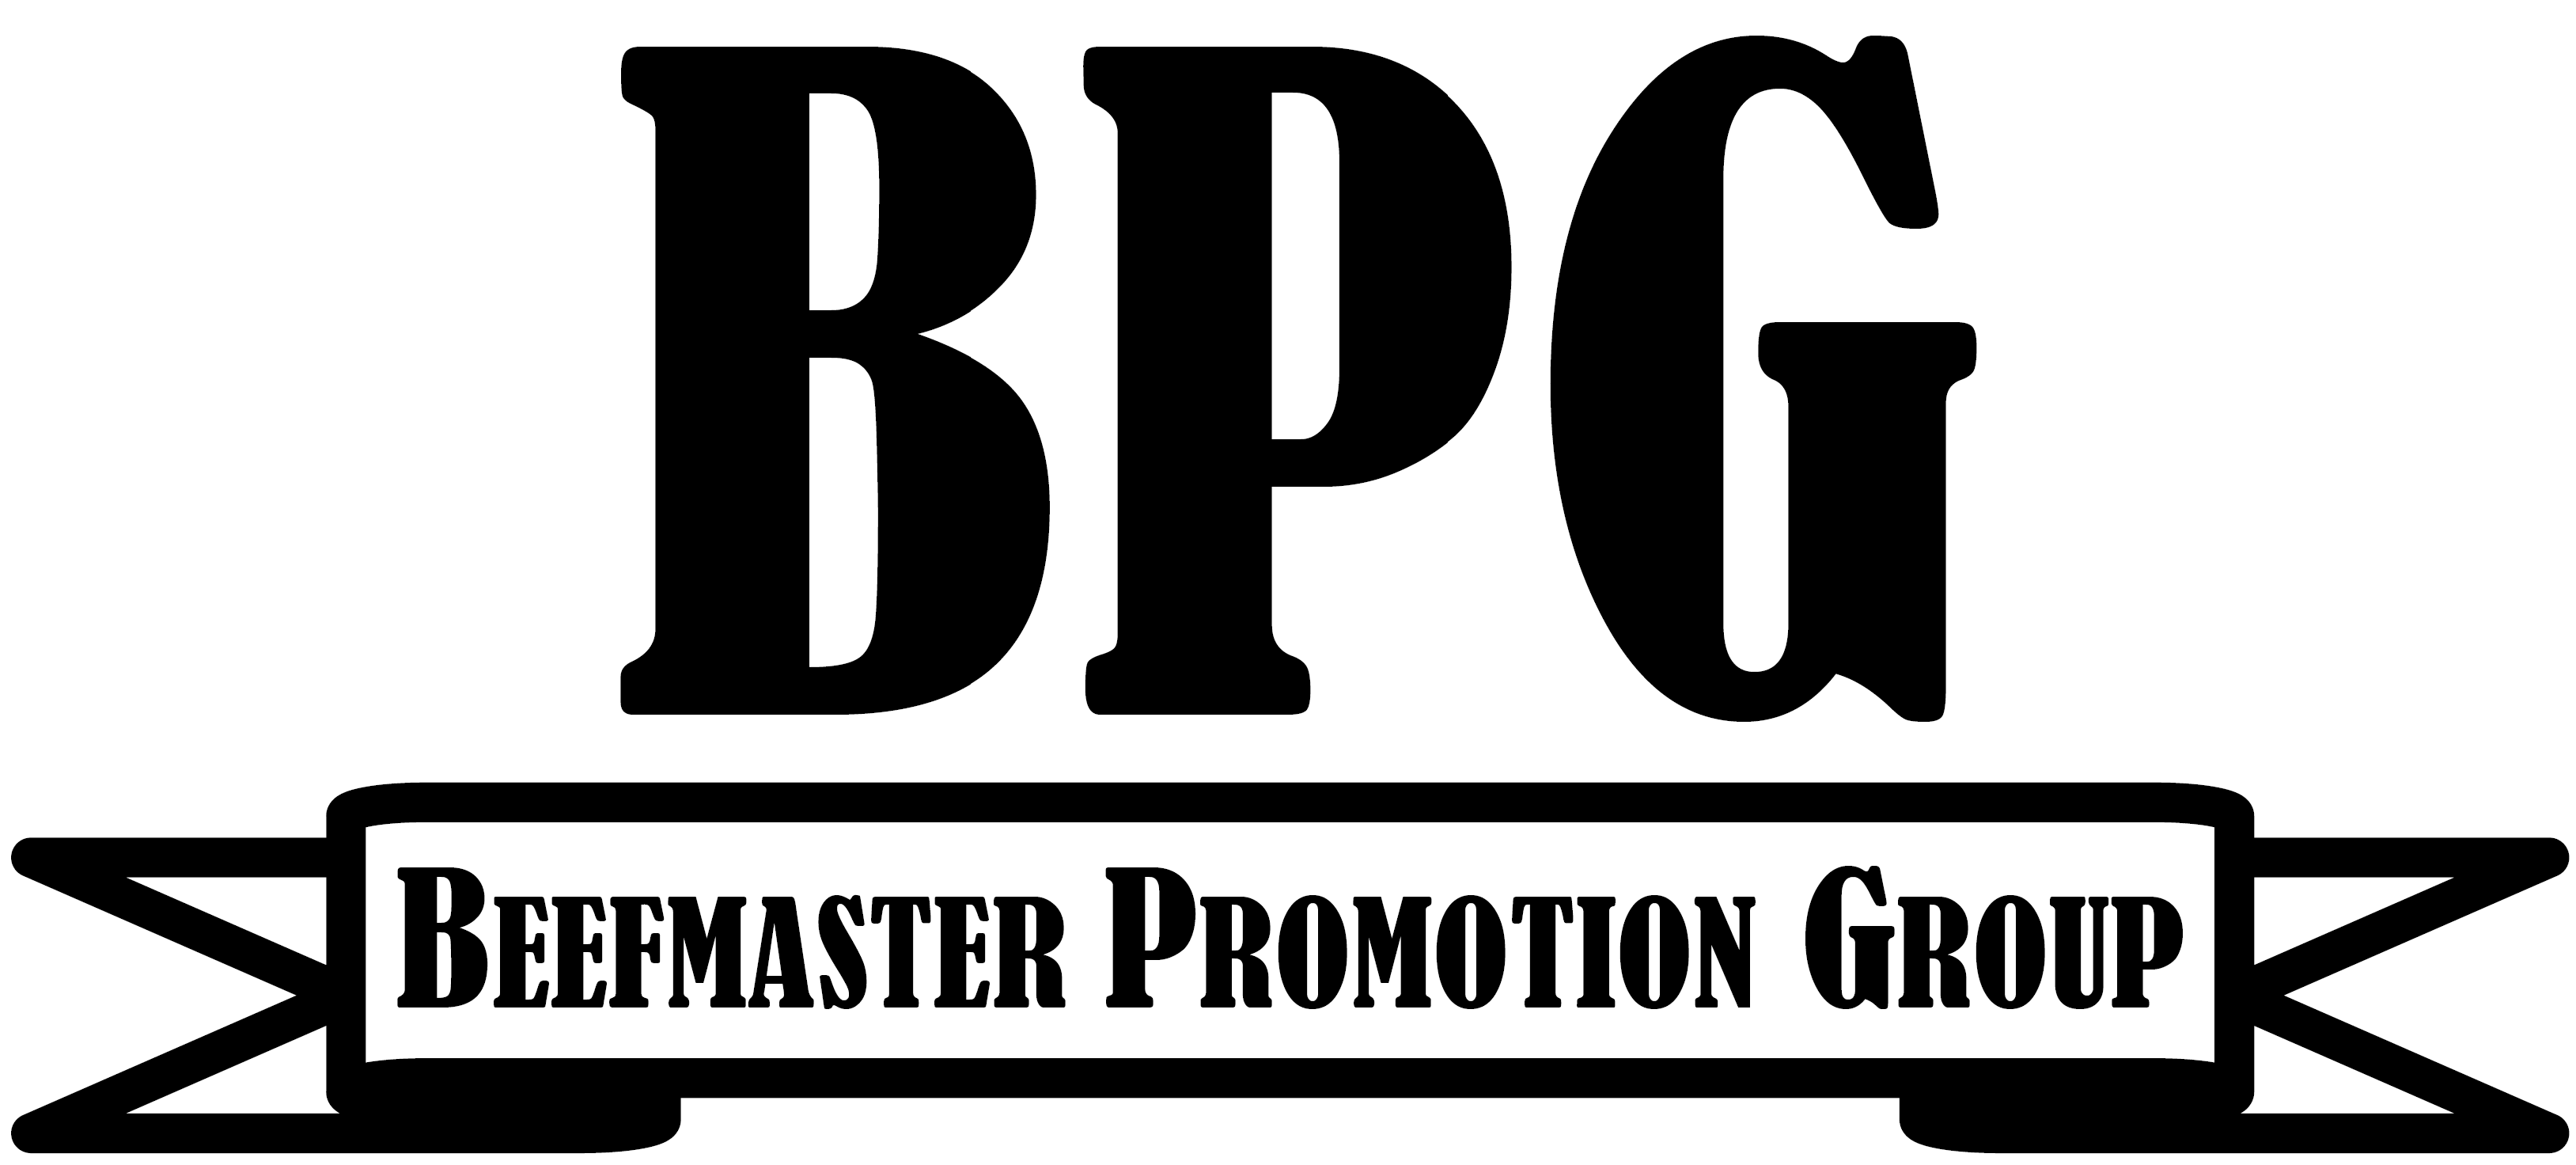 Beefmaster Promotion Group